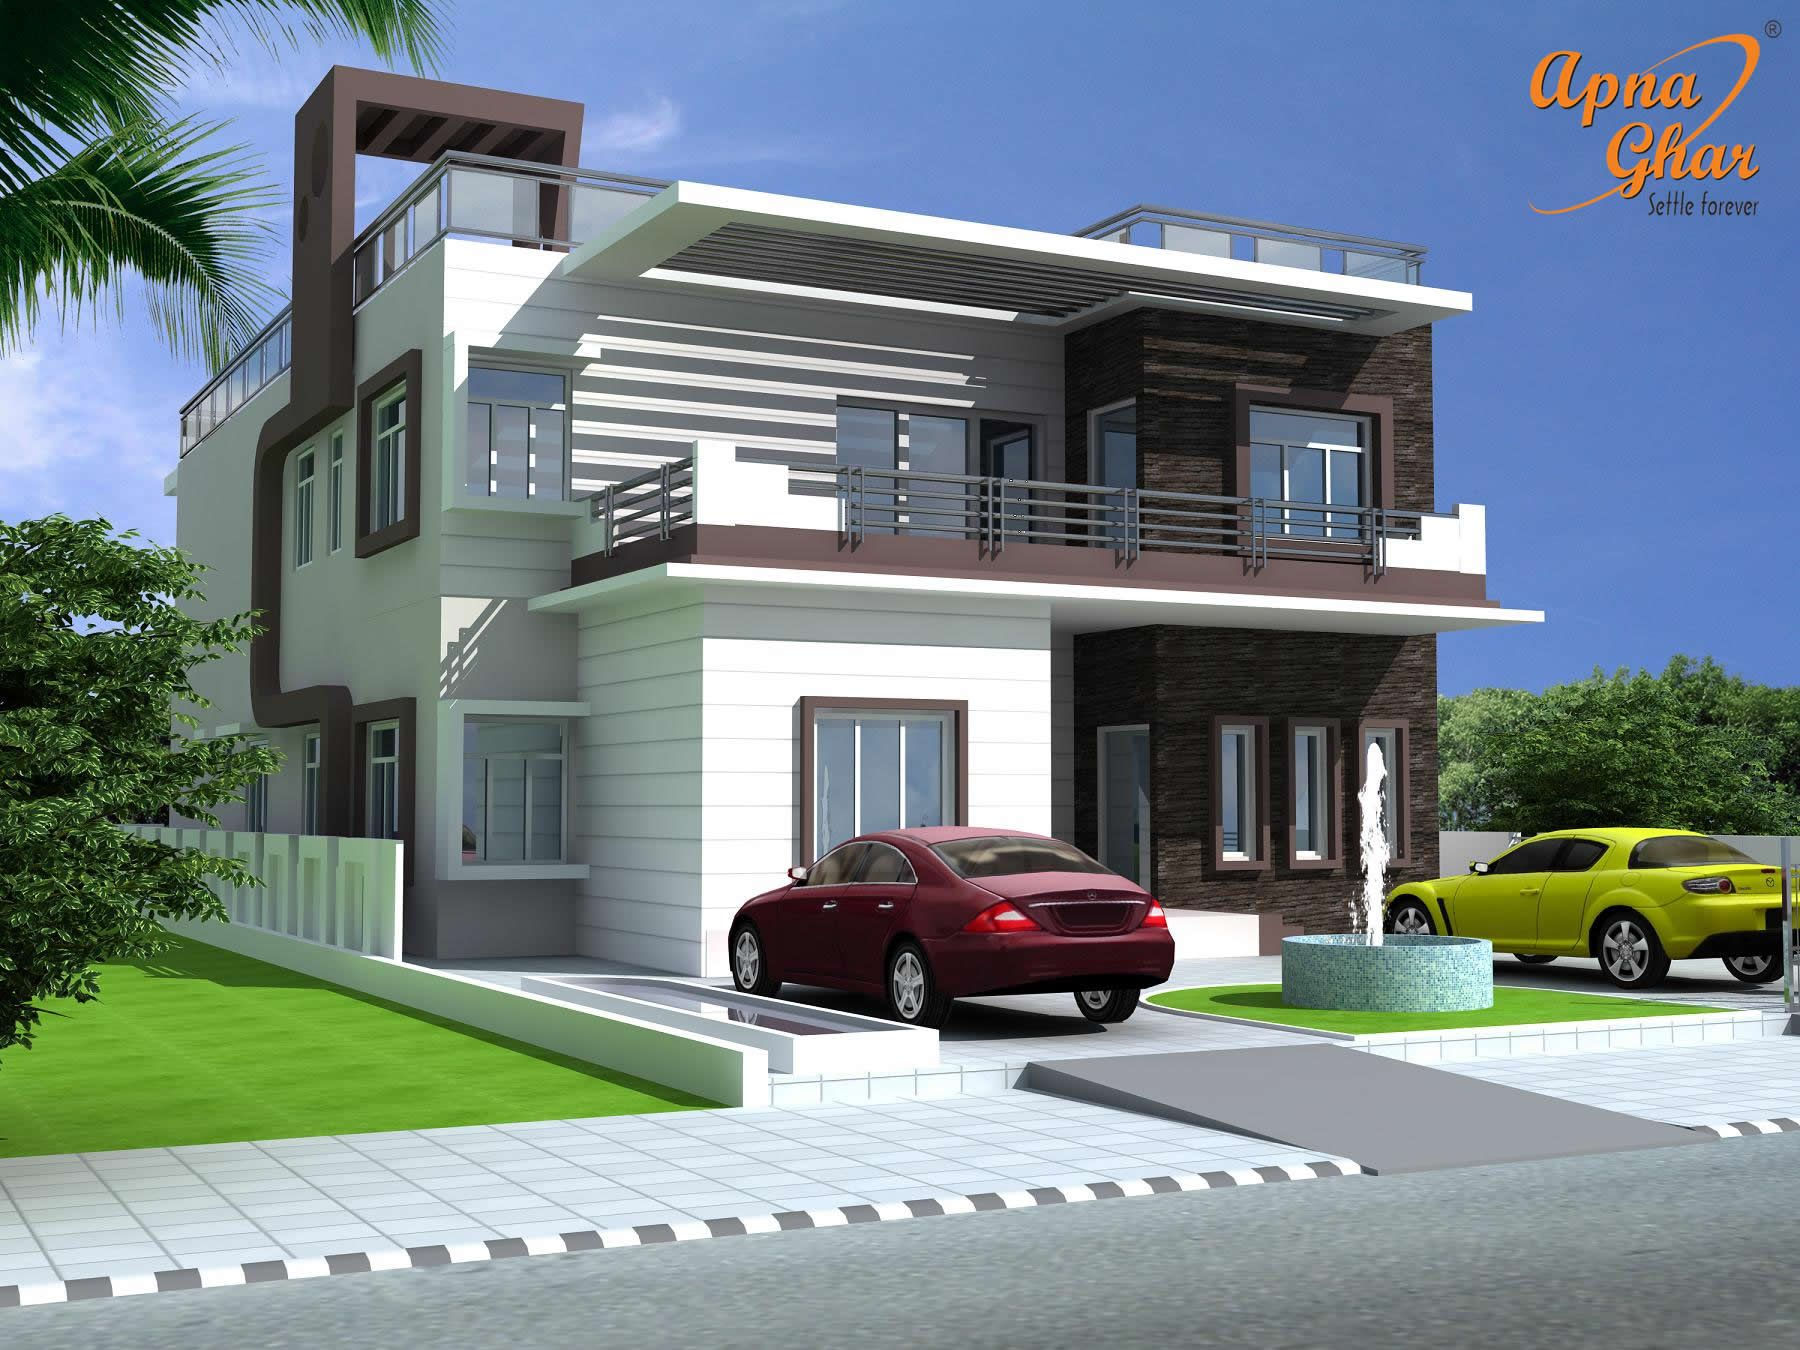 6 bedrooms duplex house design in 390m2 13m x 30m click link - Duplex home elevation design photos ...